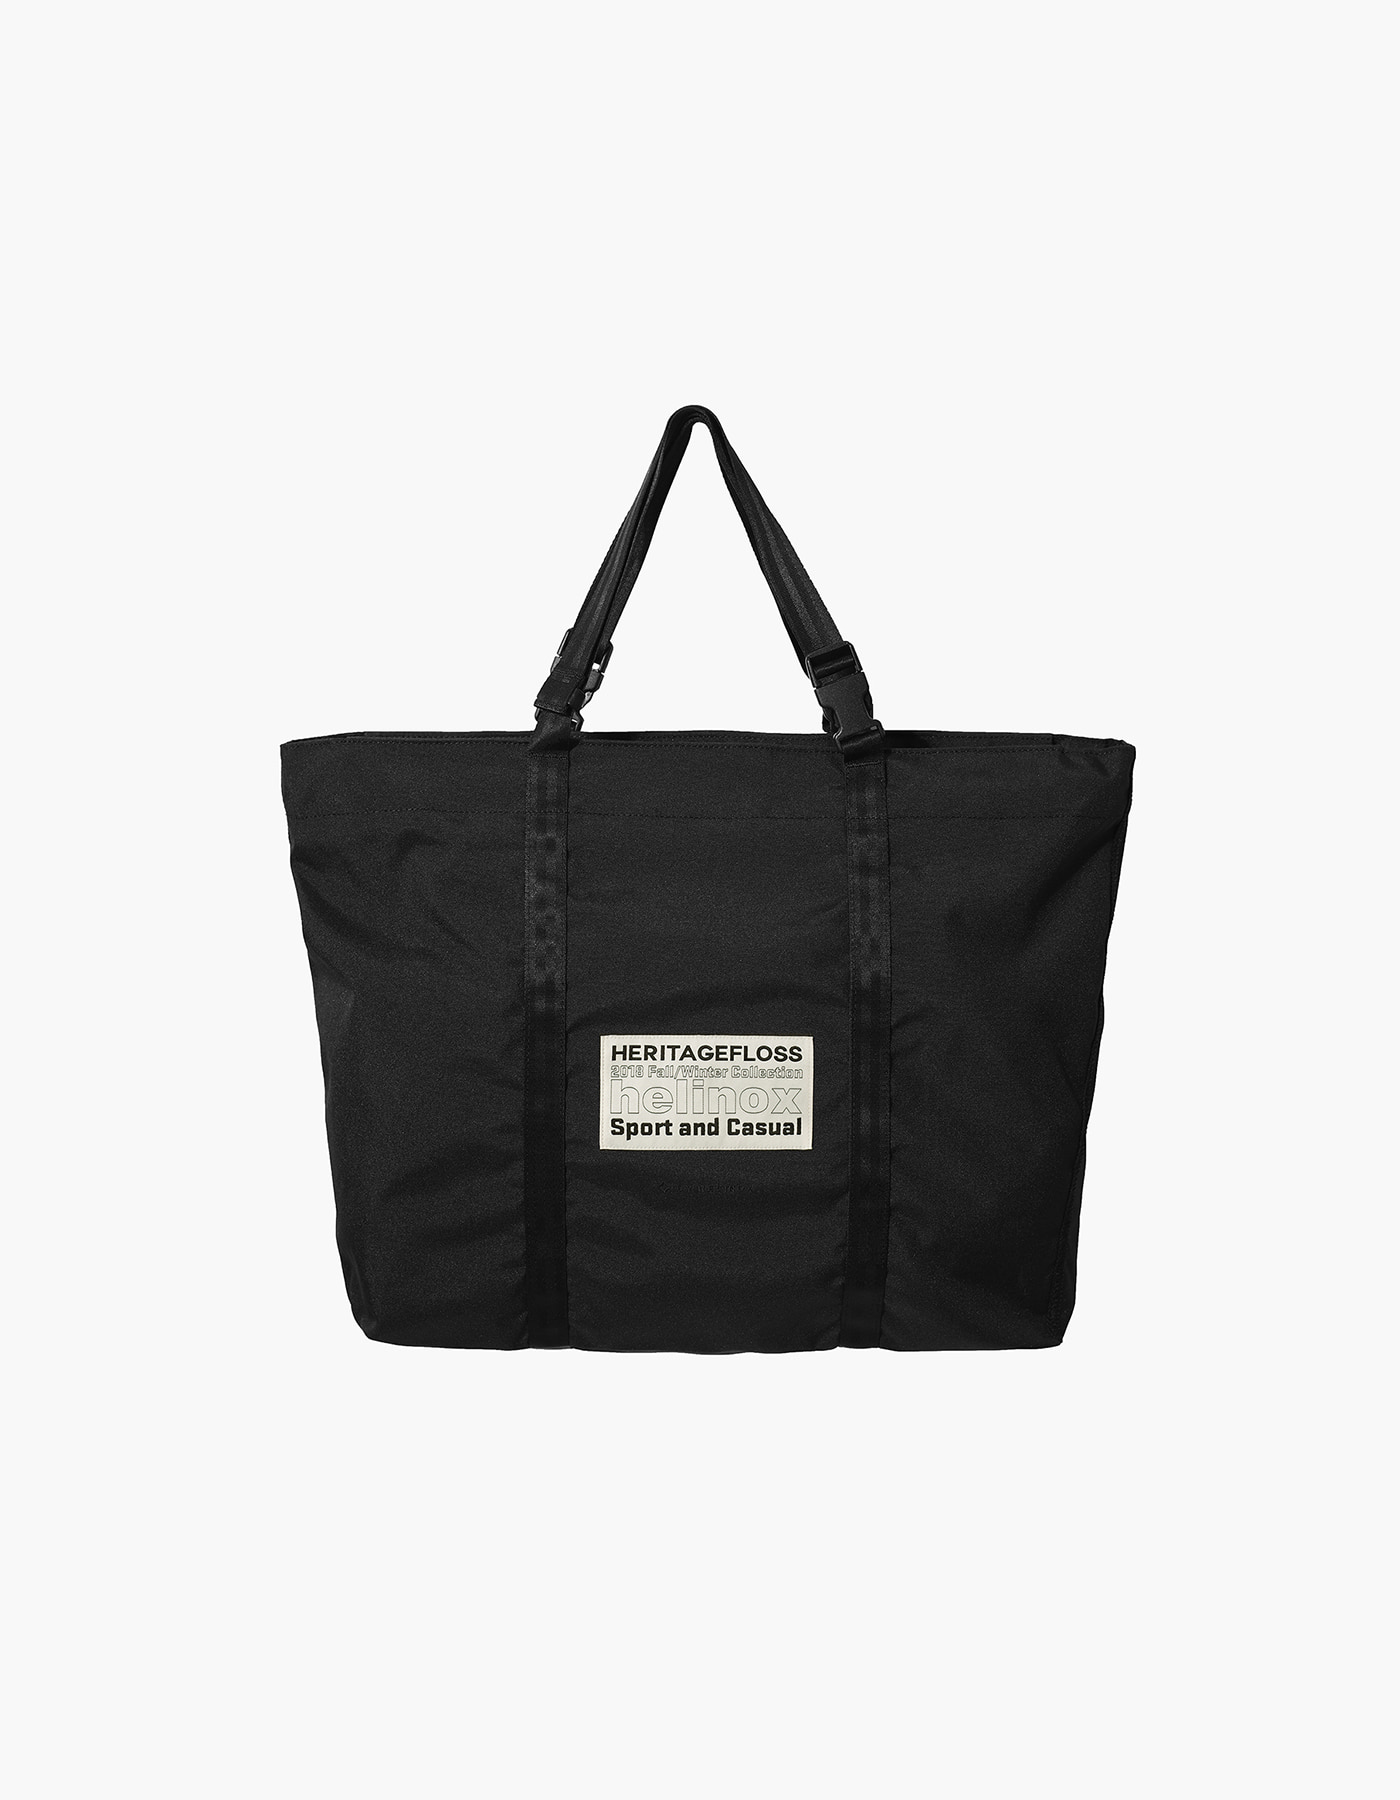 HELINOX X HERITAGEFLOSS TOTE BAG / BLACK